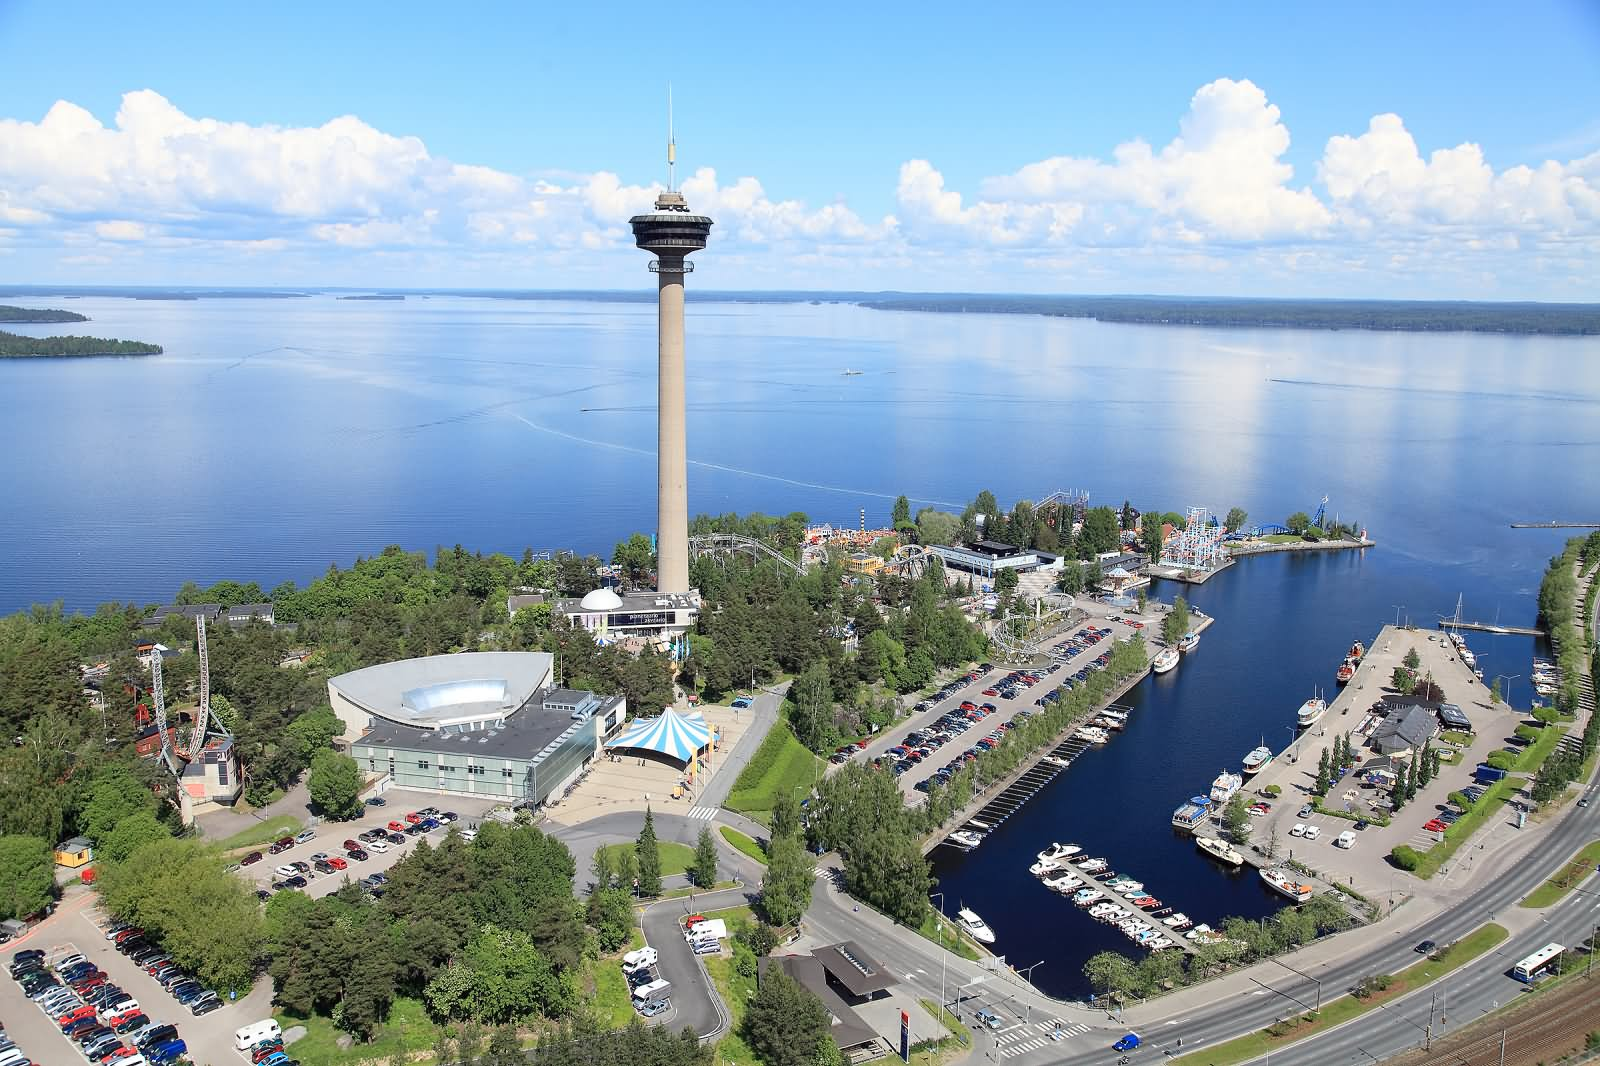 Adorable View Of The Nasinneula Tower In Finland.